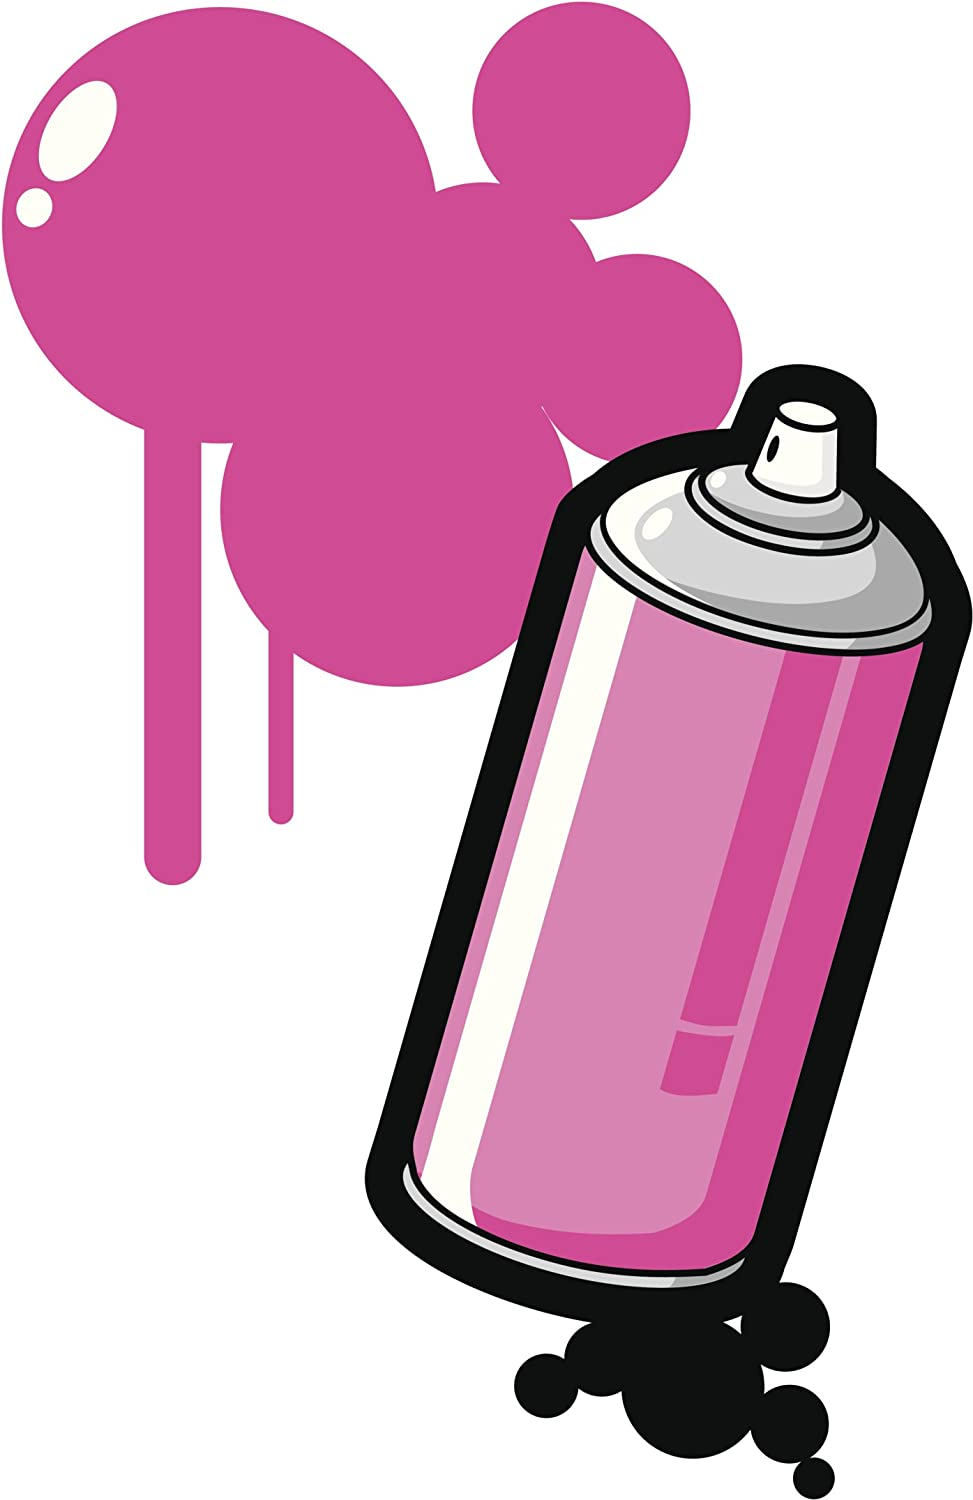 Amazon com: SPRAY PAINT CAN WITH BUBBLES GRAFFITI PINK BLACK